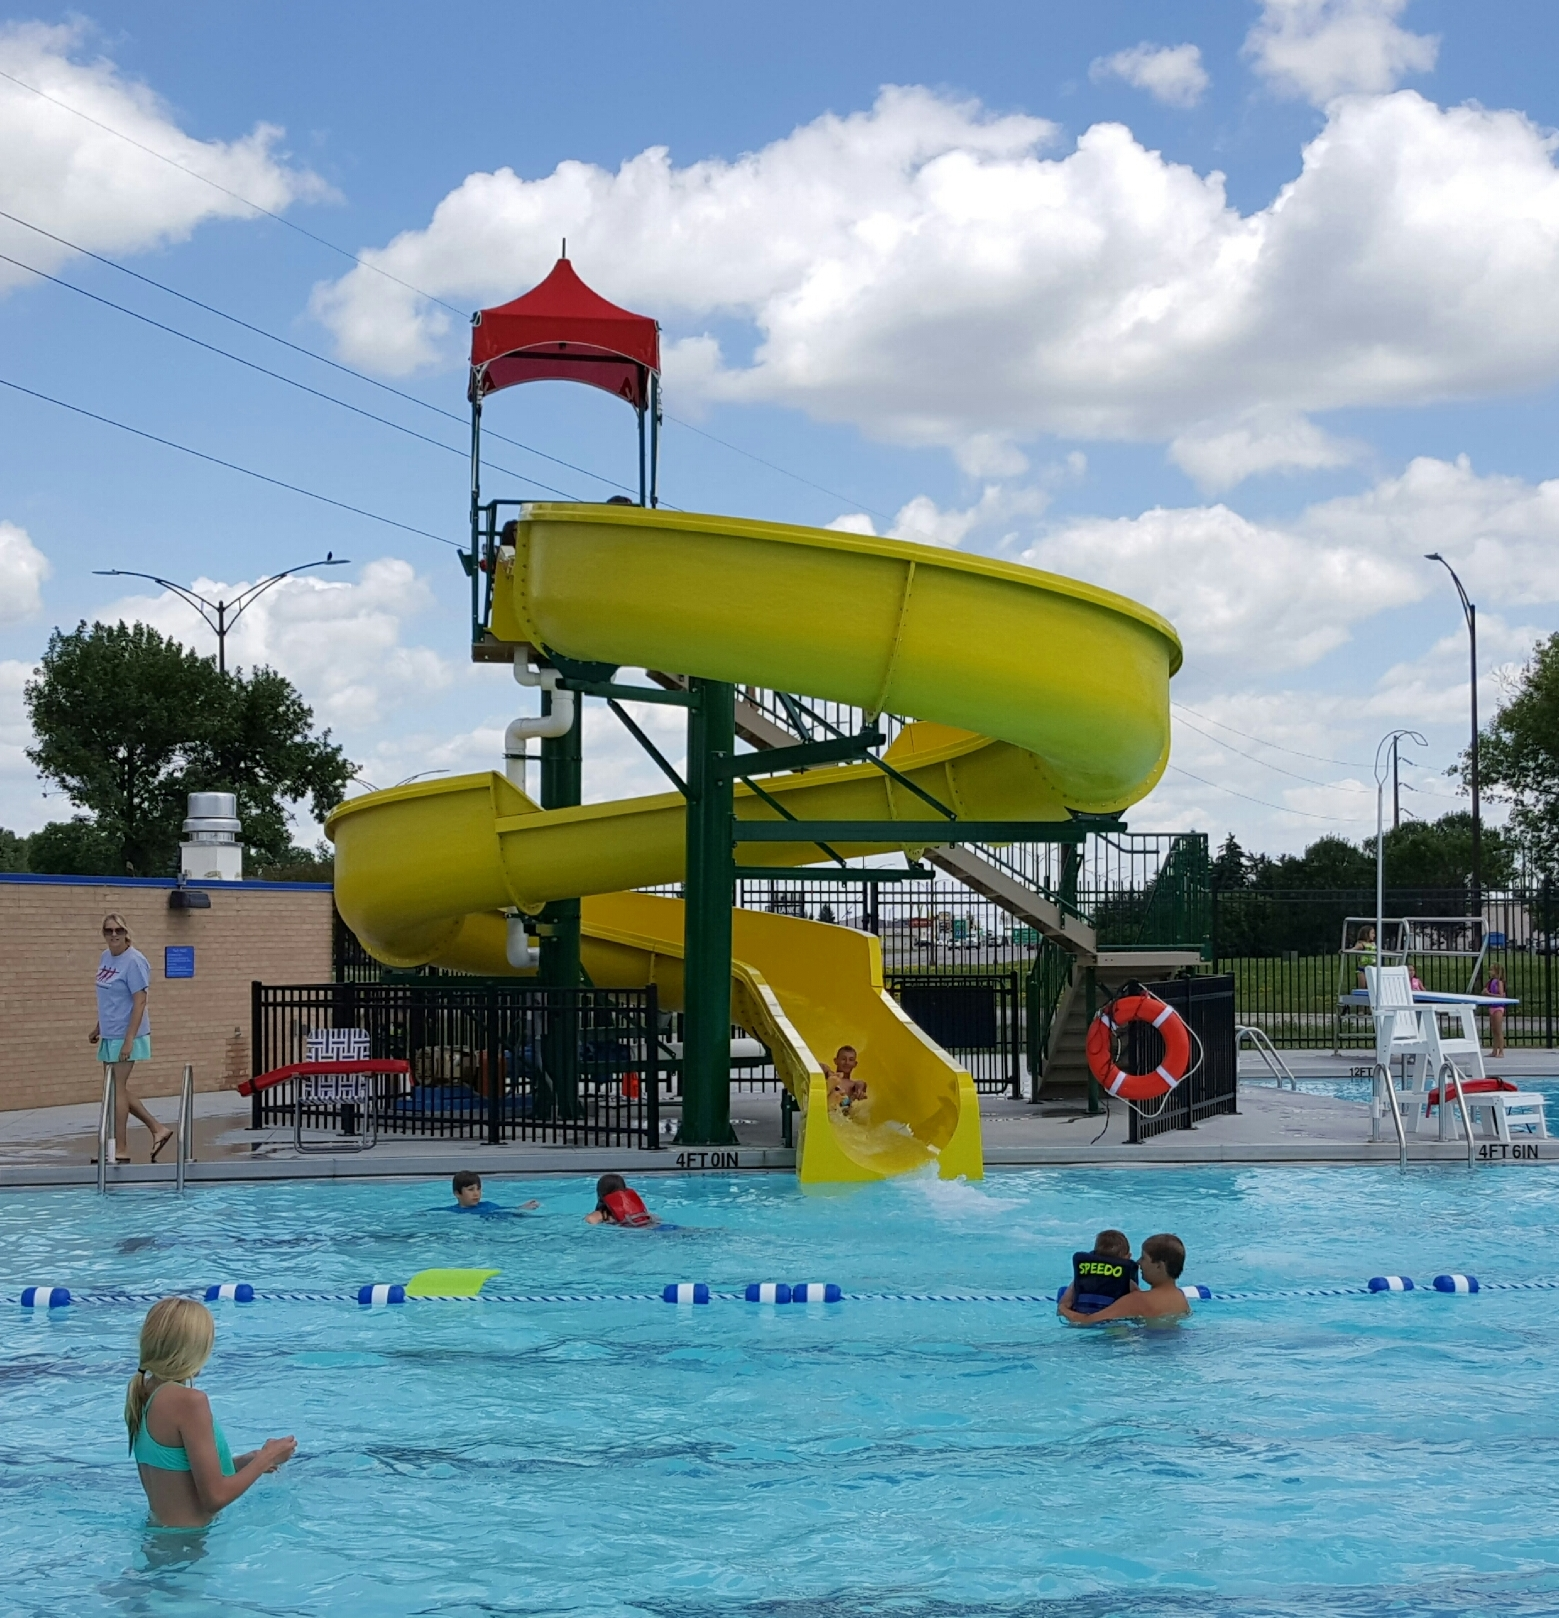 People swimming in a pool that has a slide feature